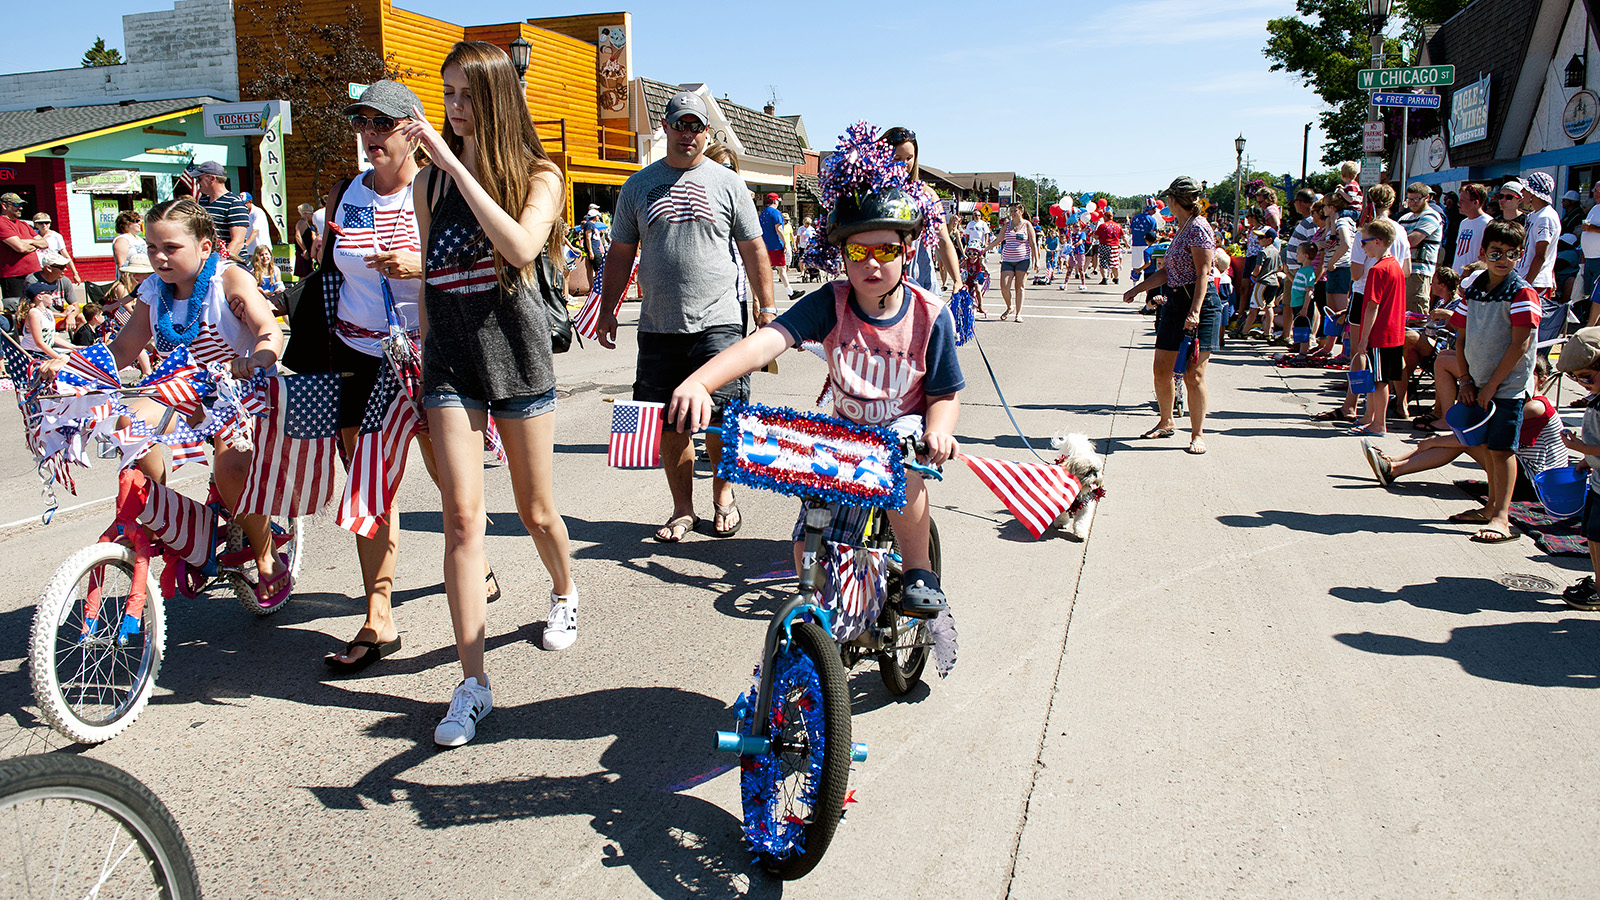 Children on bikes at Fourth of July parade